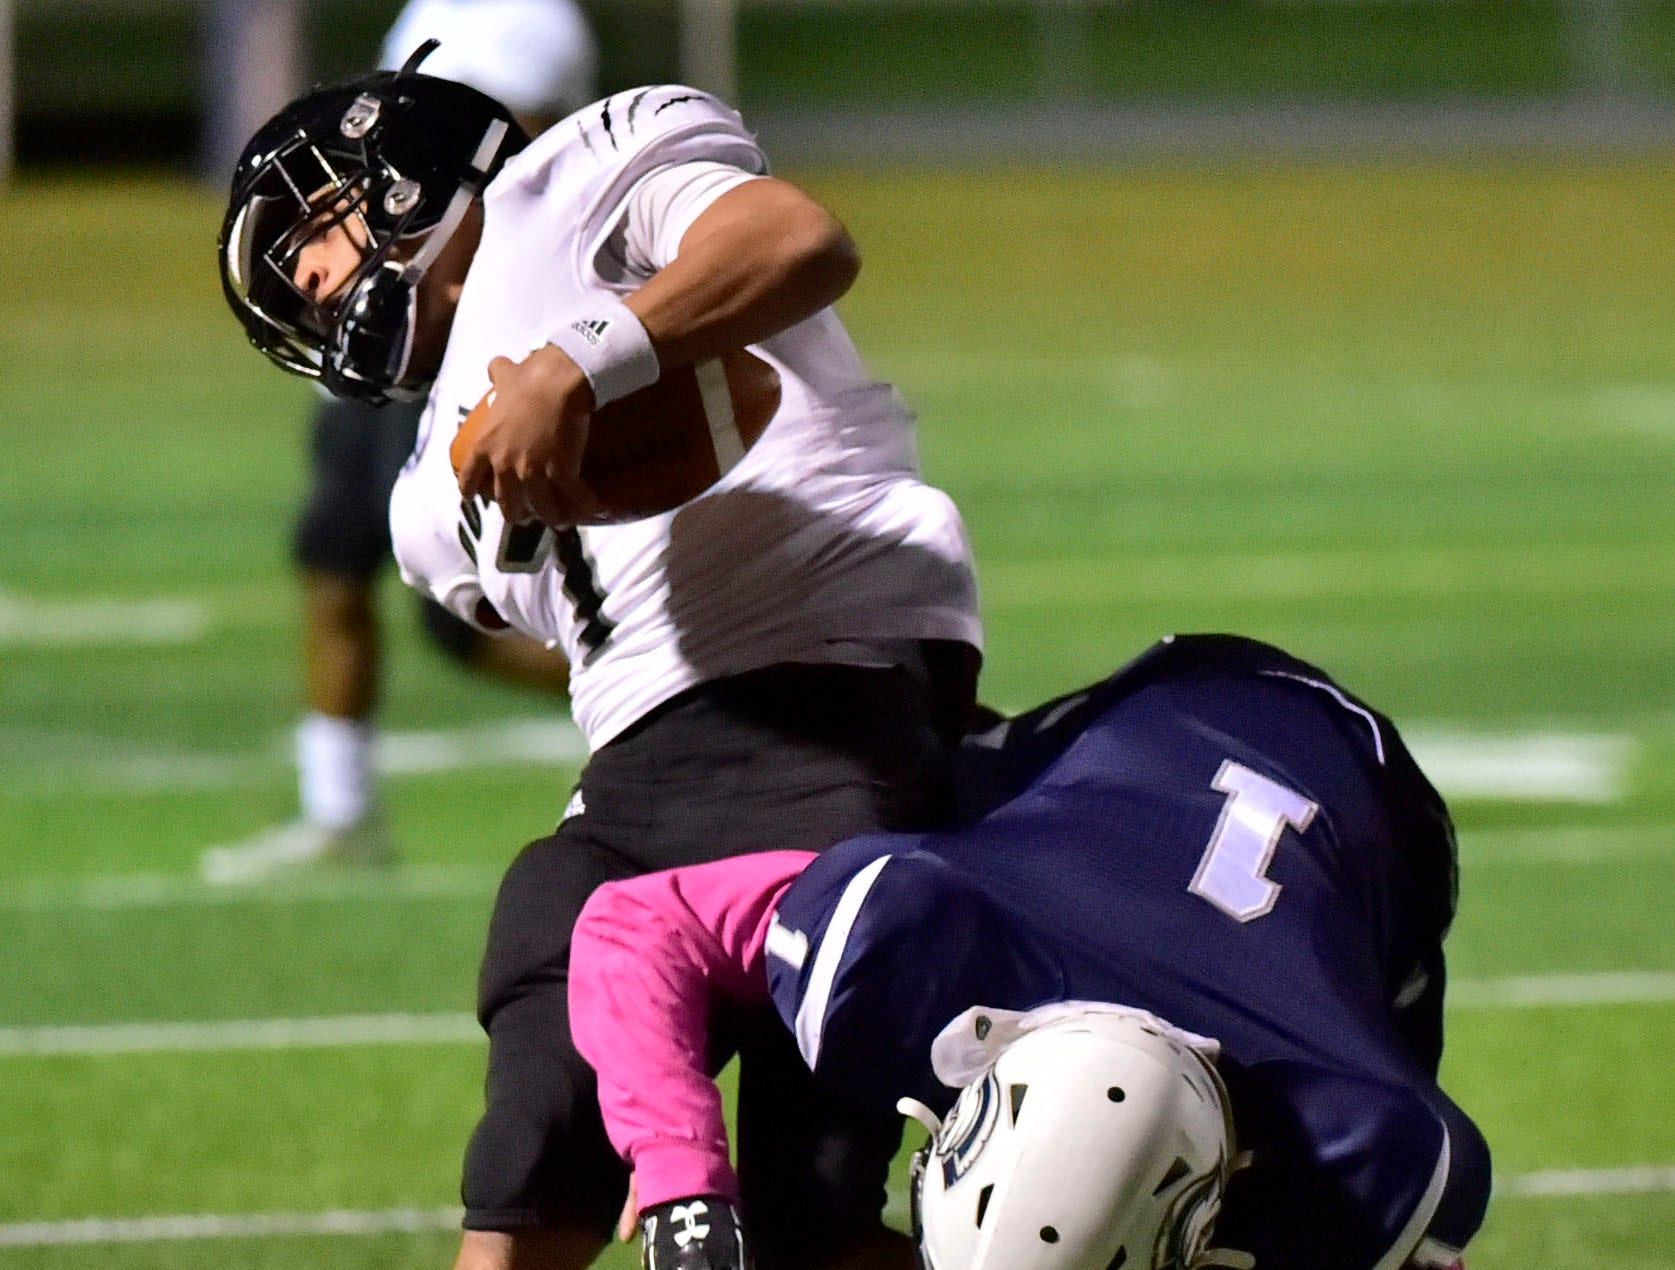 Chambersburg's Kevin Lee (1) hits Harrisburg QB Kane Everson. Chambersburg dropped a 28-13 game against Harrisburg in PIAA football on Friday, Oct. 12, 2018.